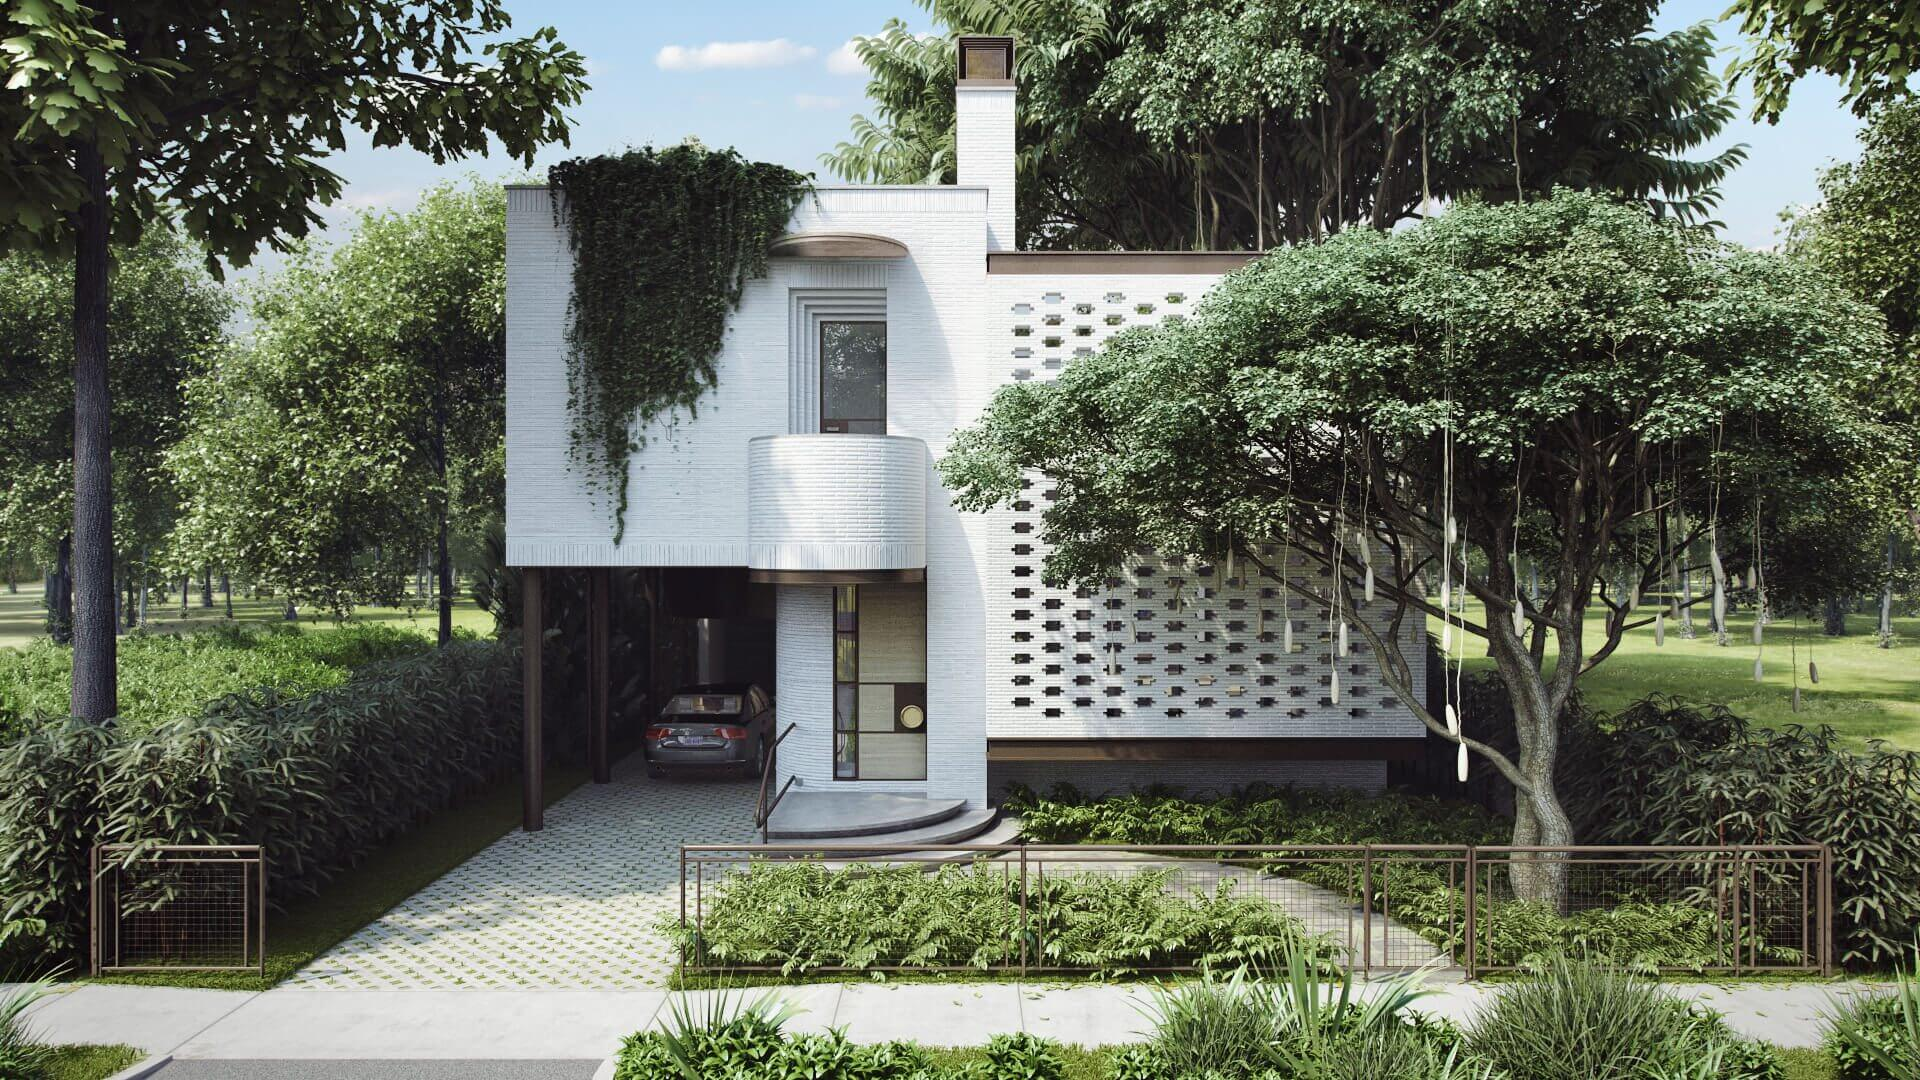 Digital Renderings Of a Stylish House Exterior